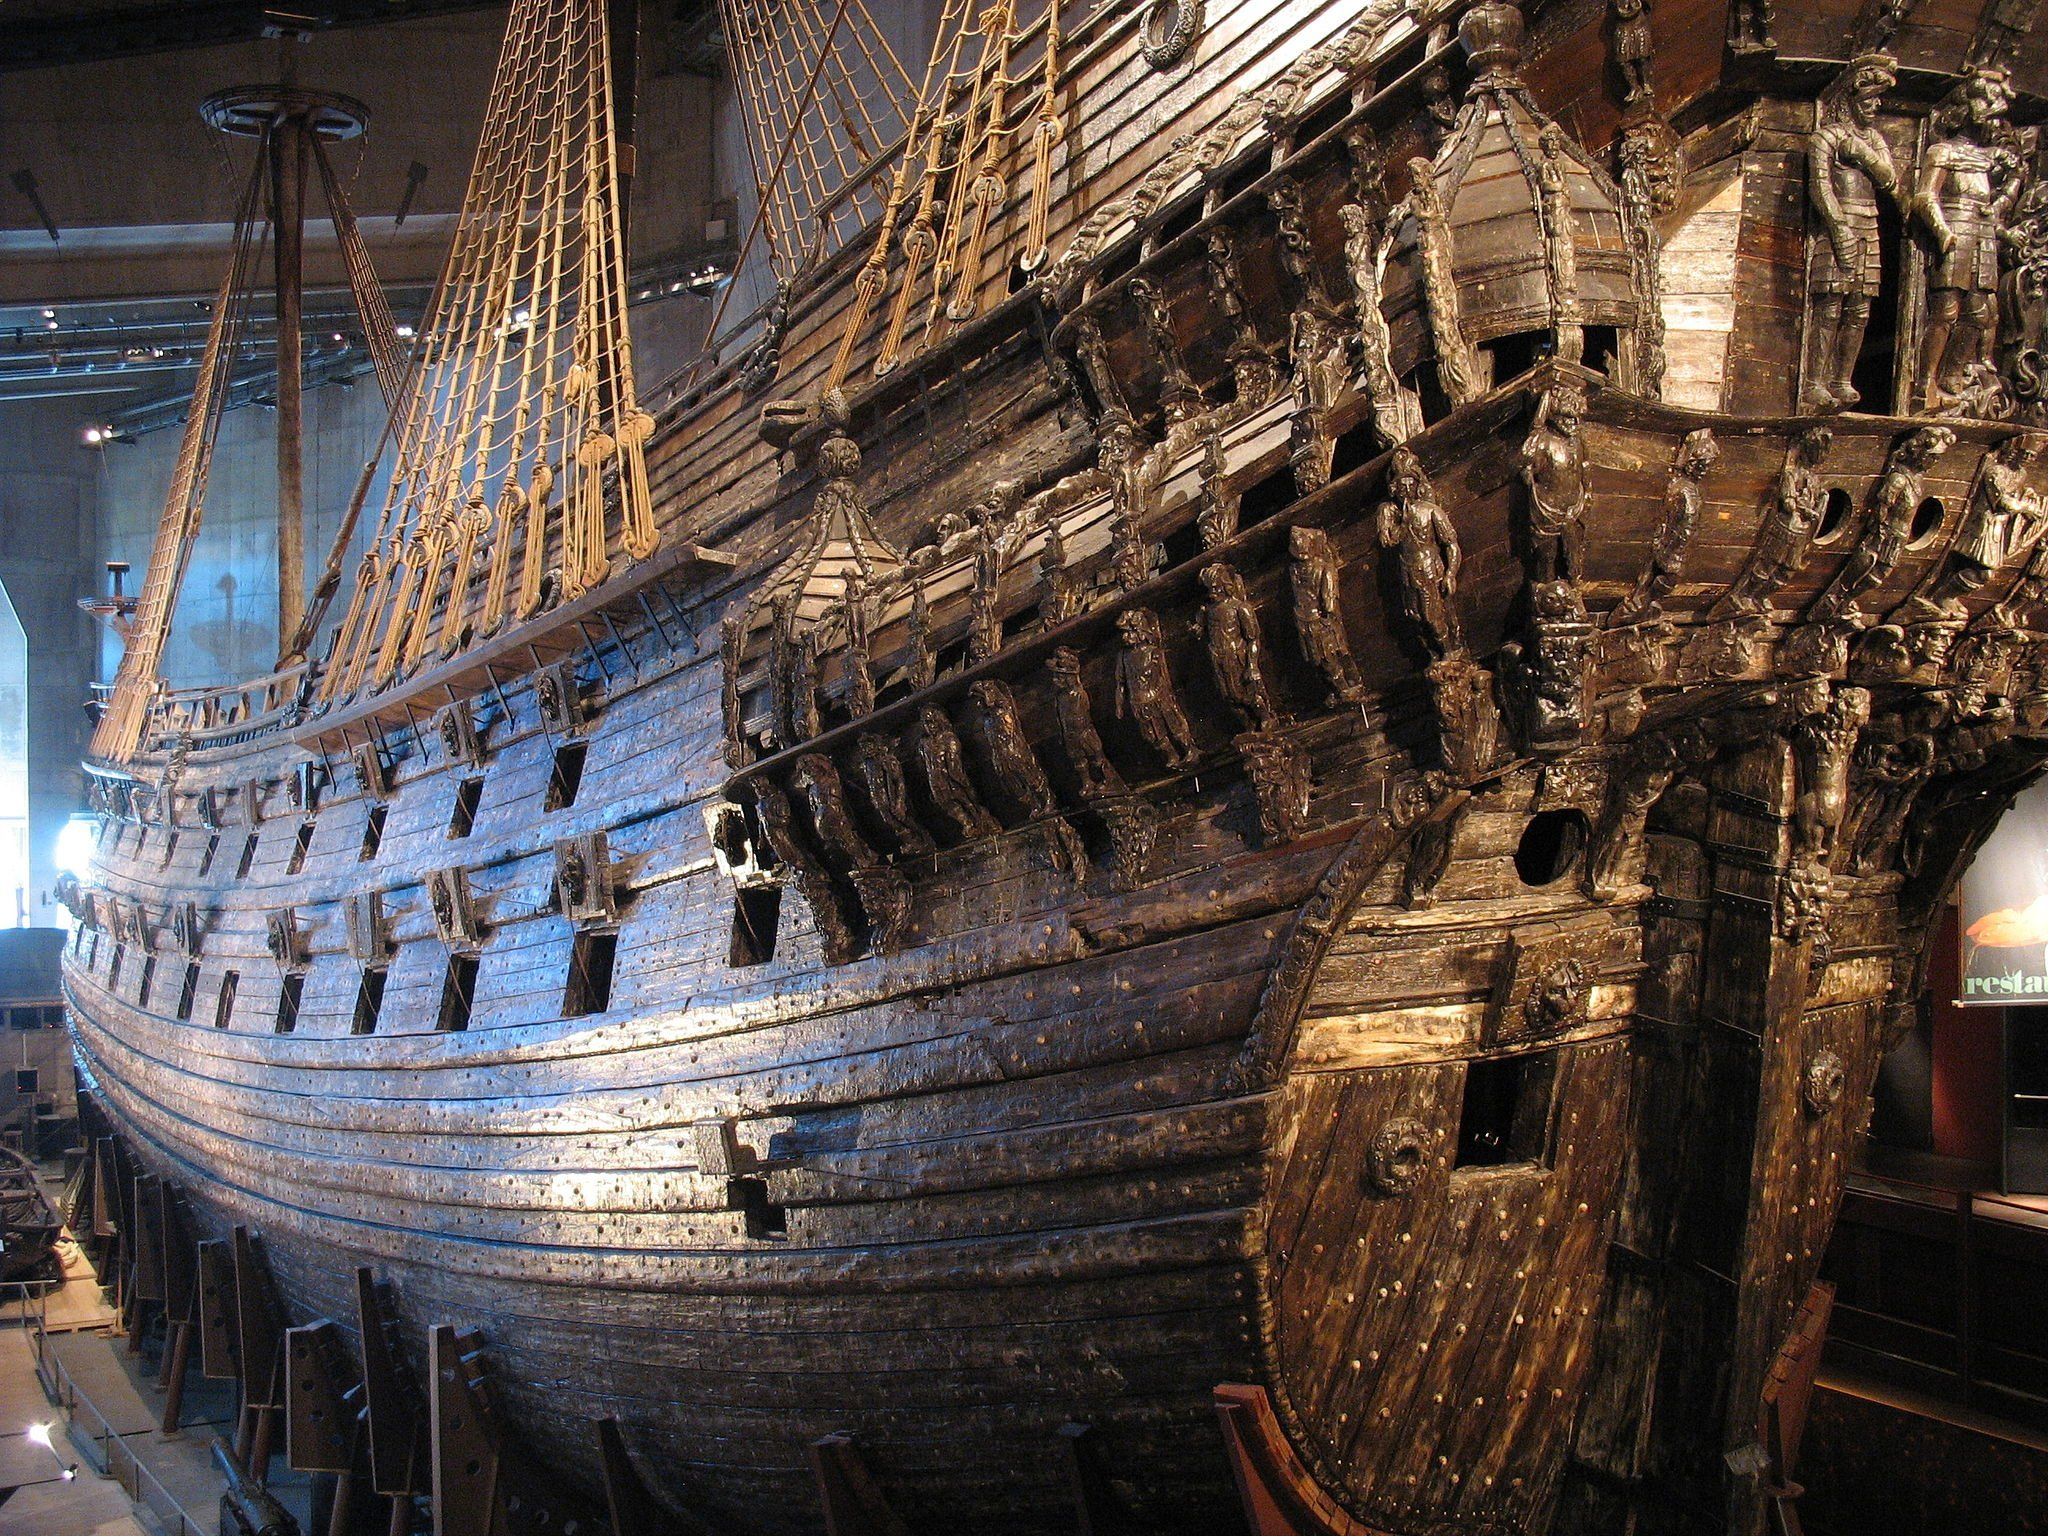 Regalskeppet Vasa. Foto: Peter Isotalo, via Wikimedia Commons